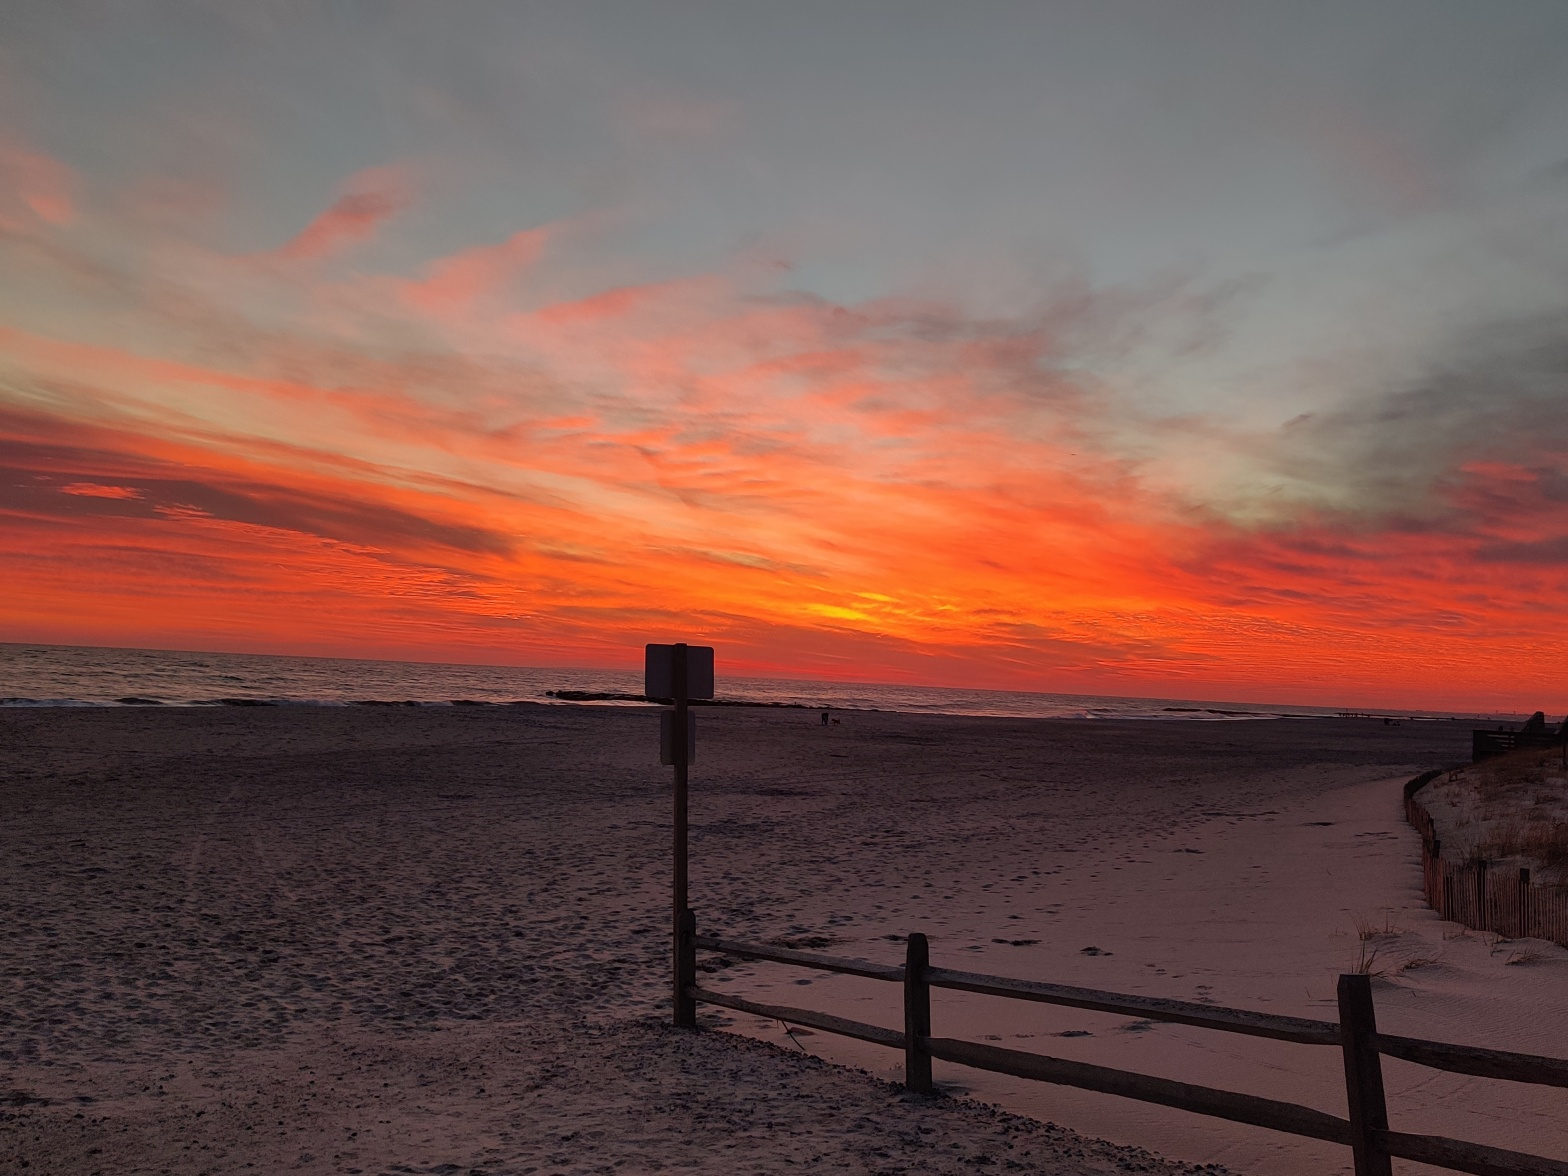 Israel Joffe incredible sunset in Long Beach NY